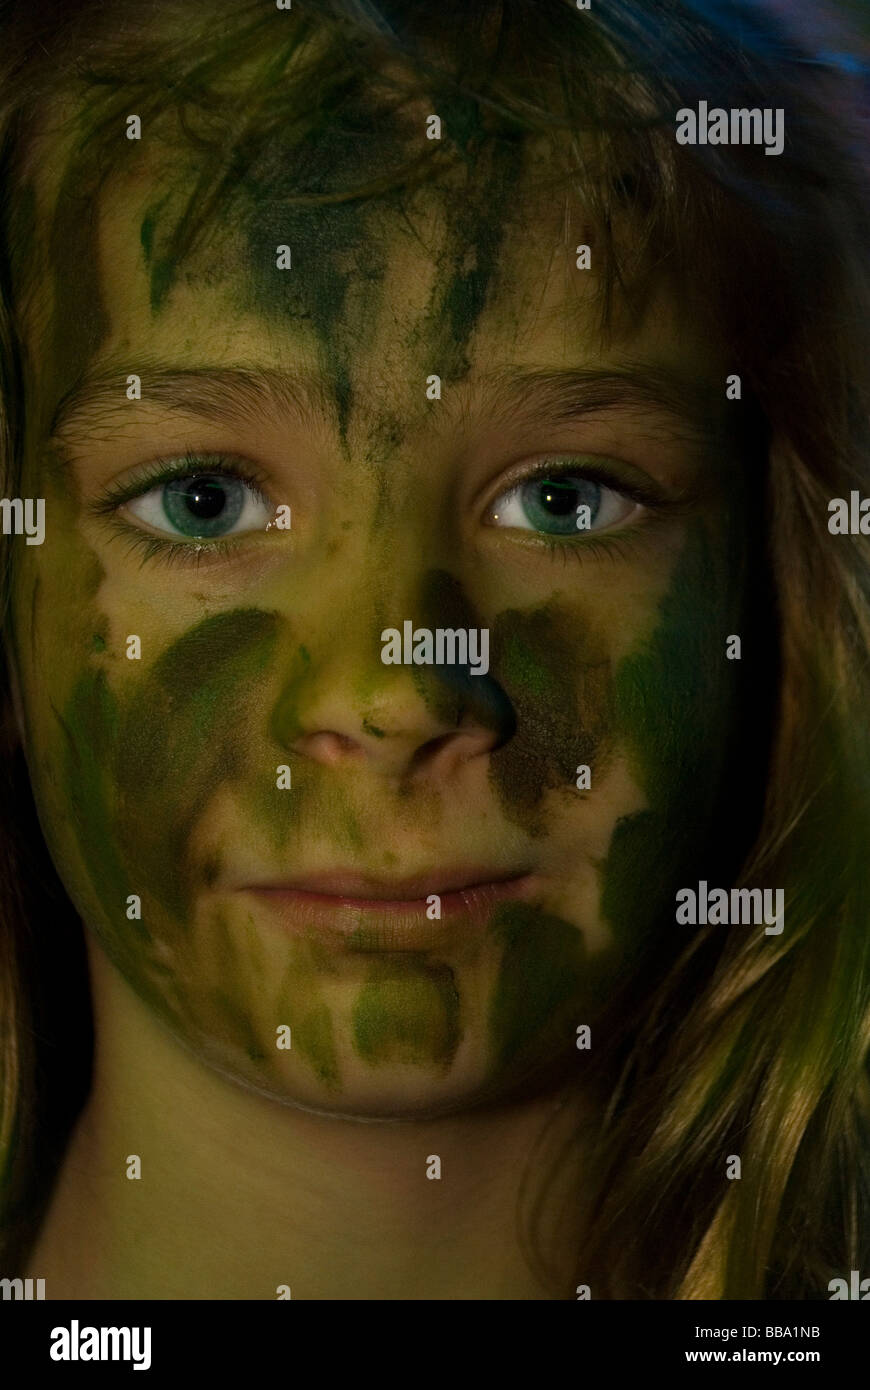 young girl with face cam stock photo 24192487 alamy